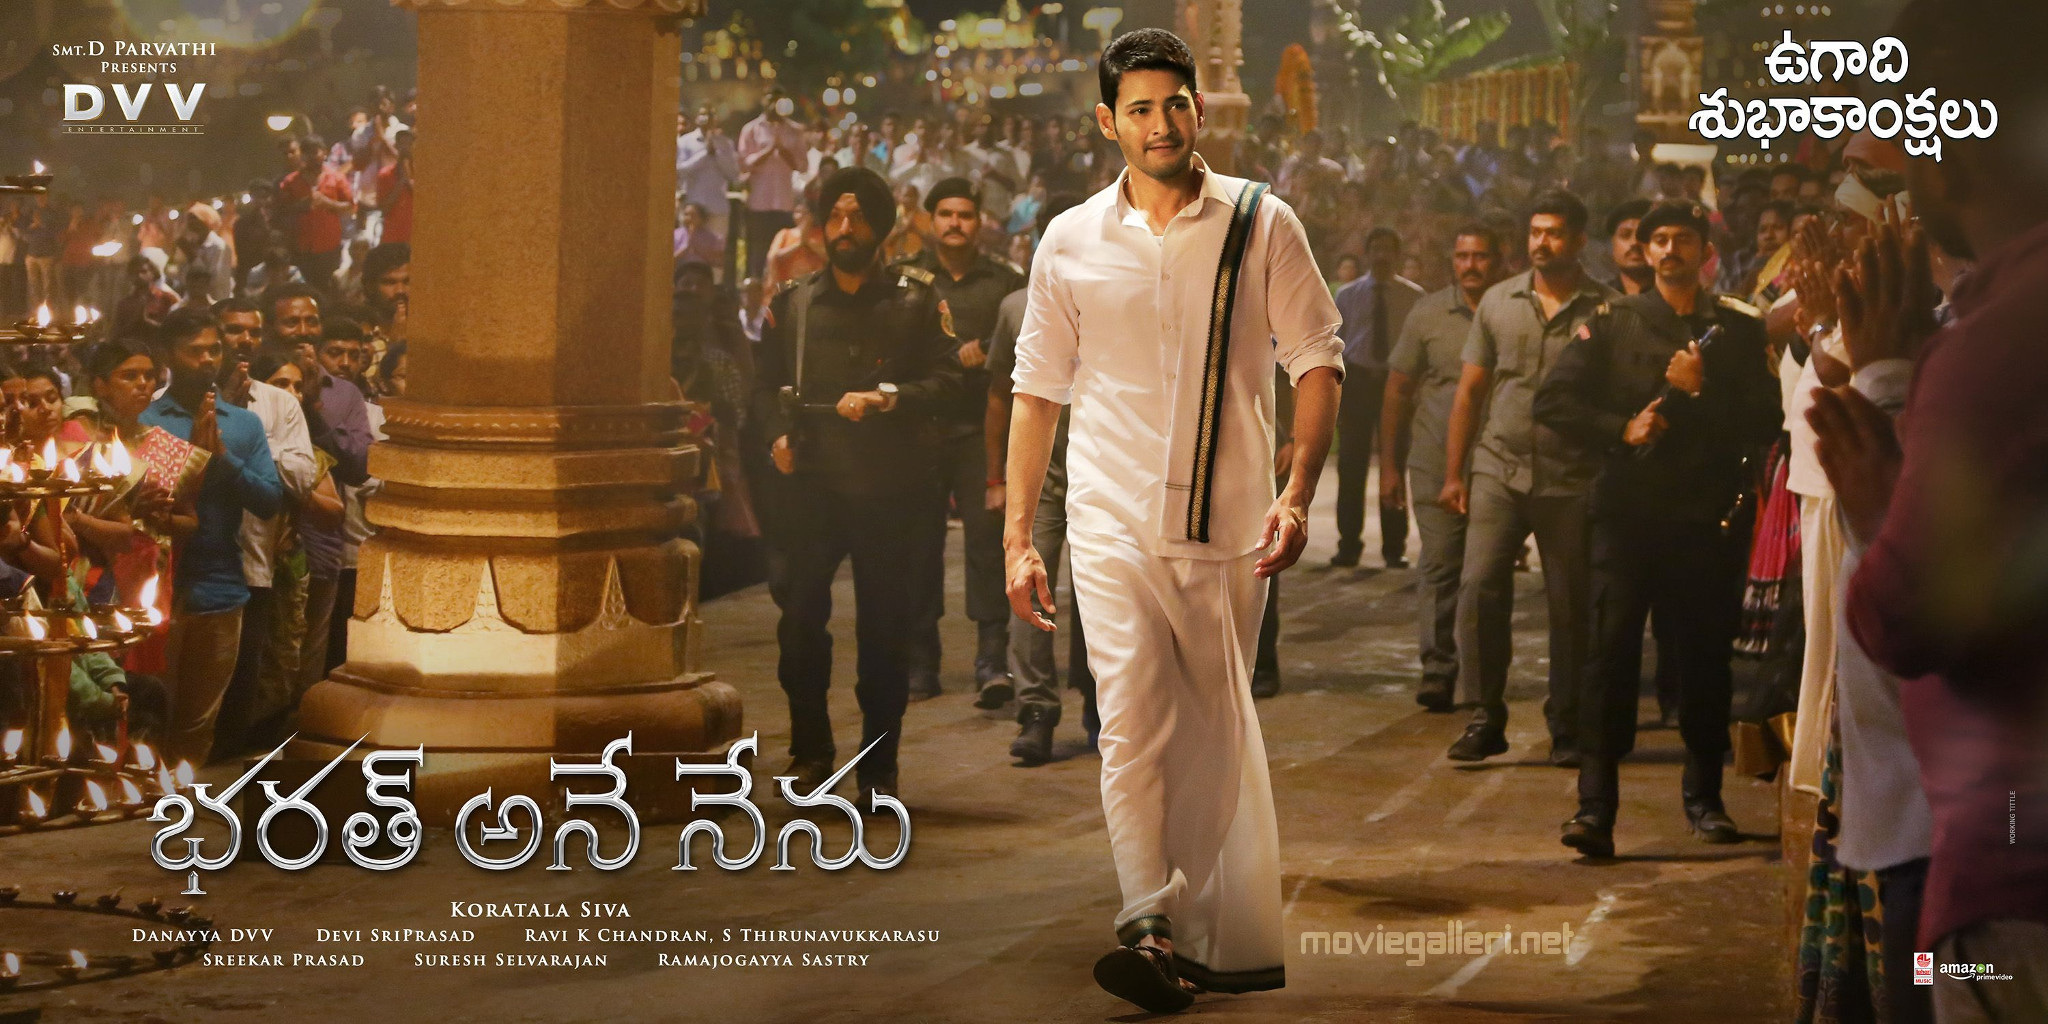 Mahesh Babu Bharat Ane Nenu Movie Ugadi Wishes Wallpaper HD